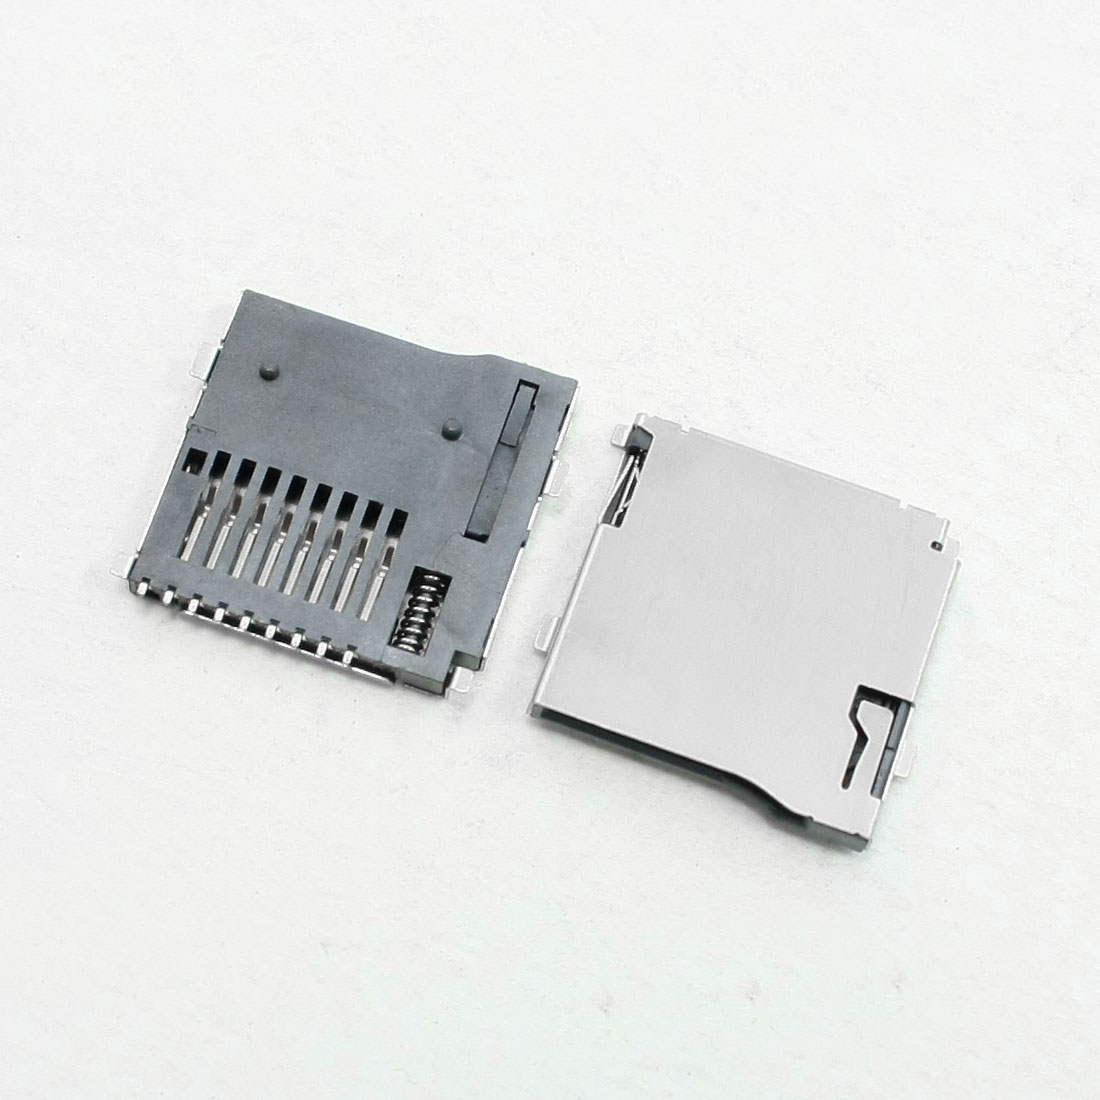 Stainless Steel Automatic Push-Push Type TF Micro SD Card Socket 10 Pcs